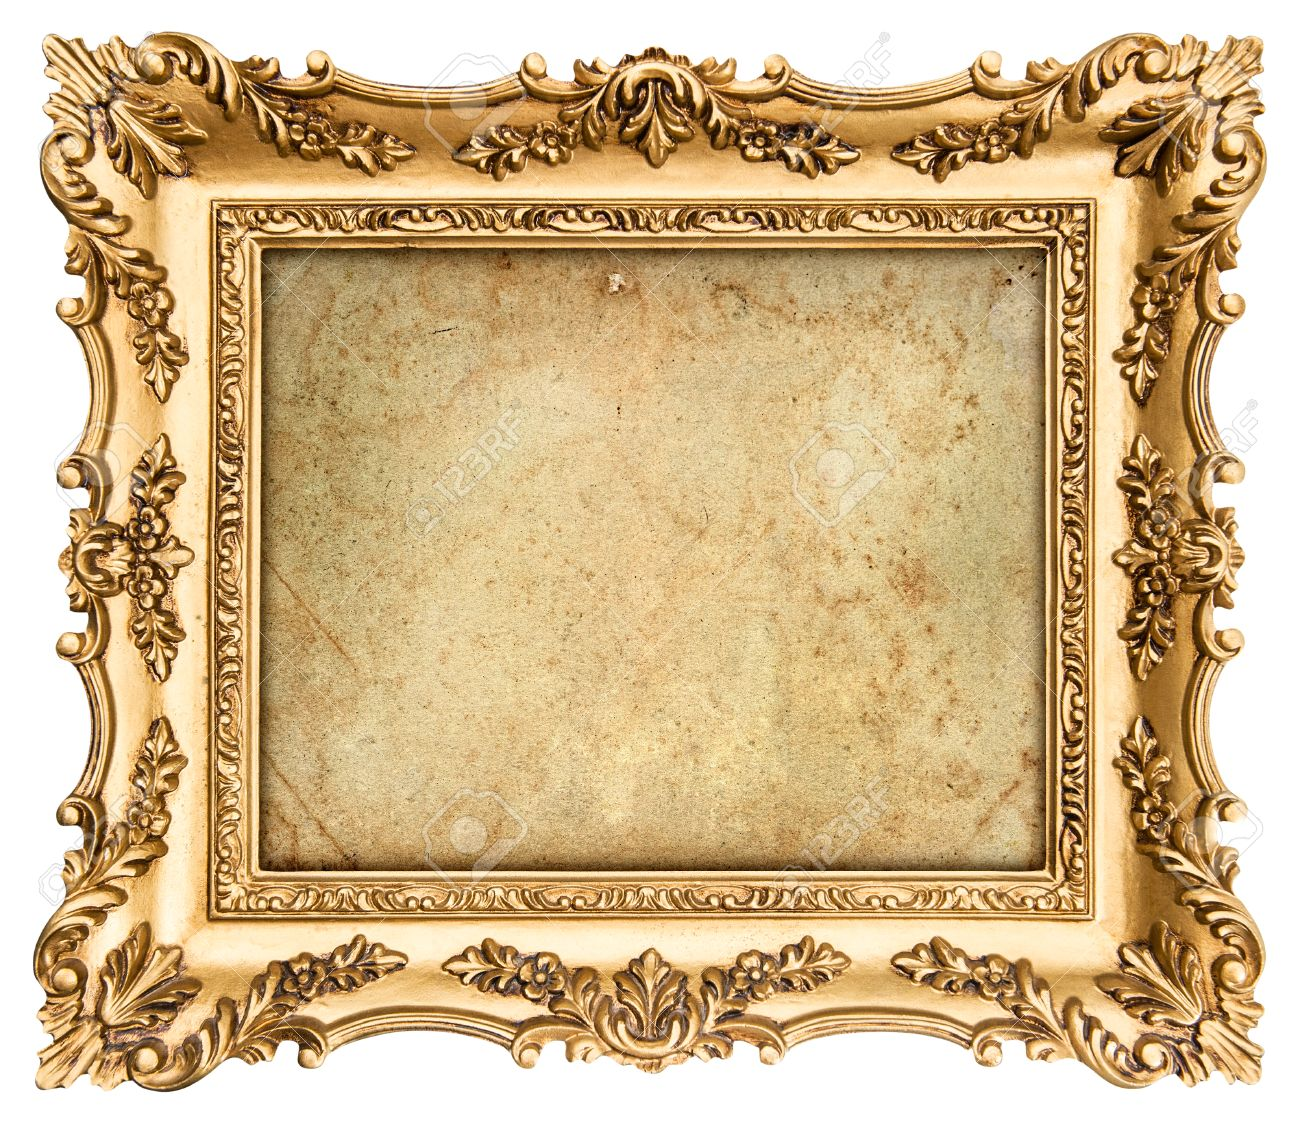 Old Golden Frame With Empty Grunge Canvas For Your Picture, Photo ...